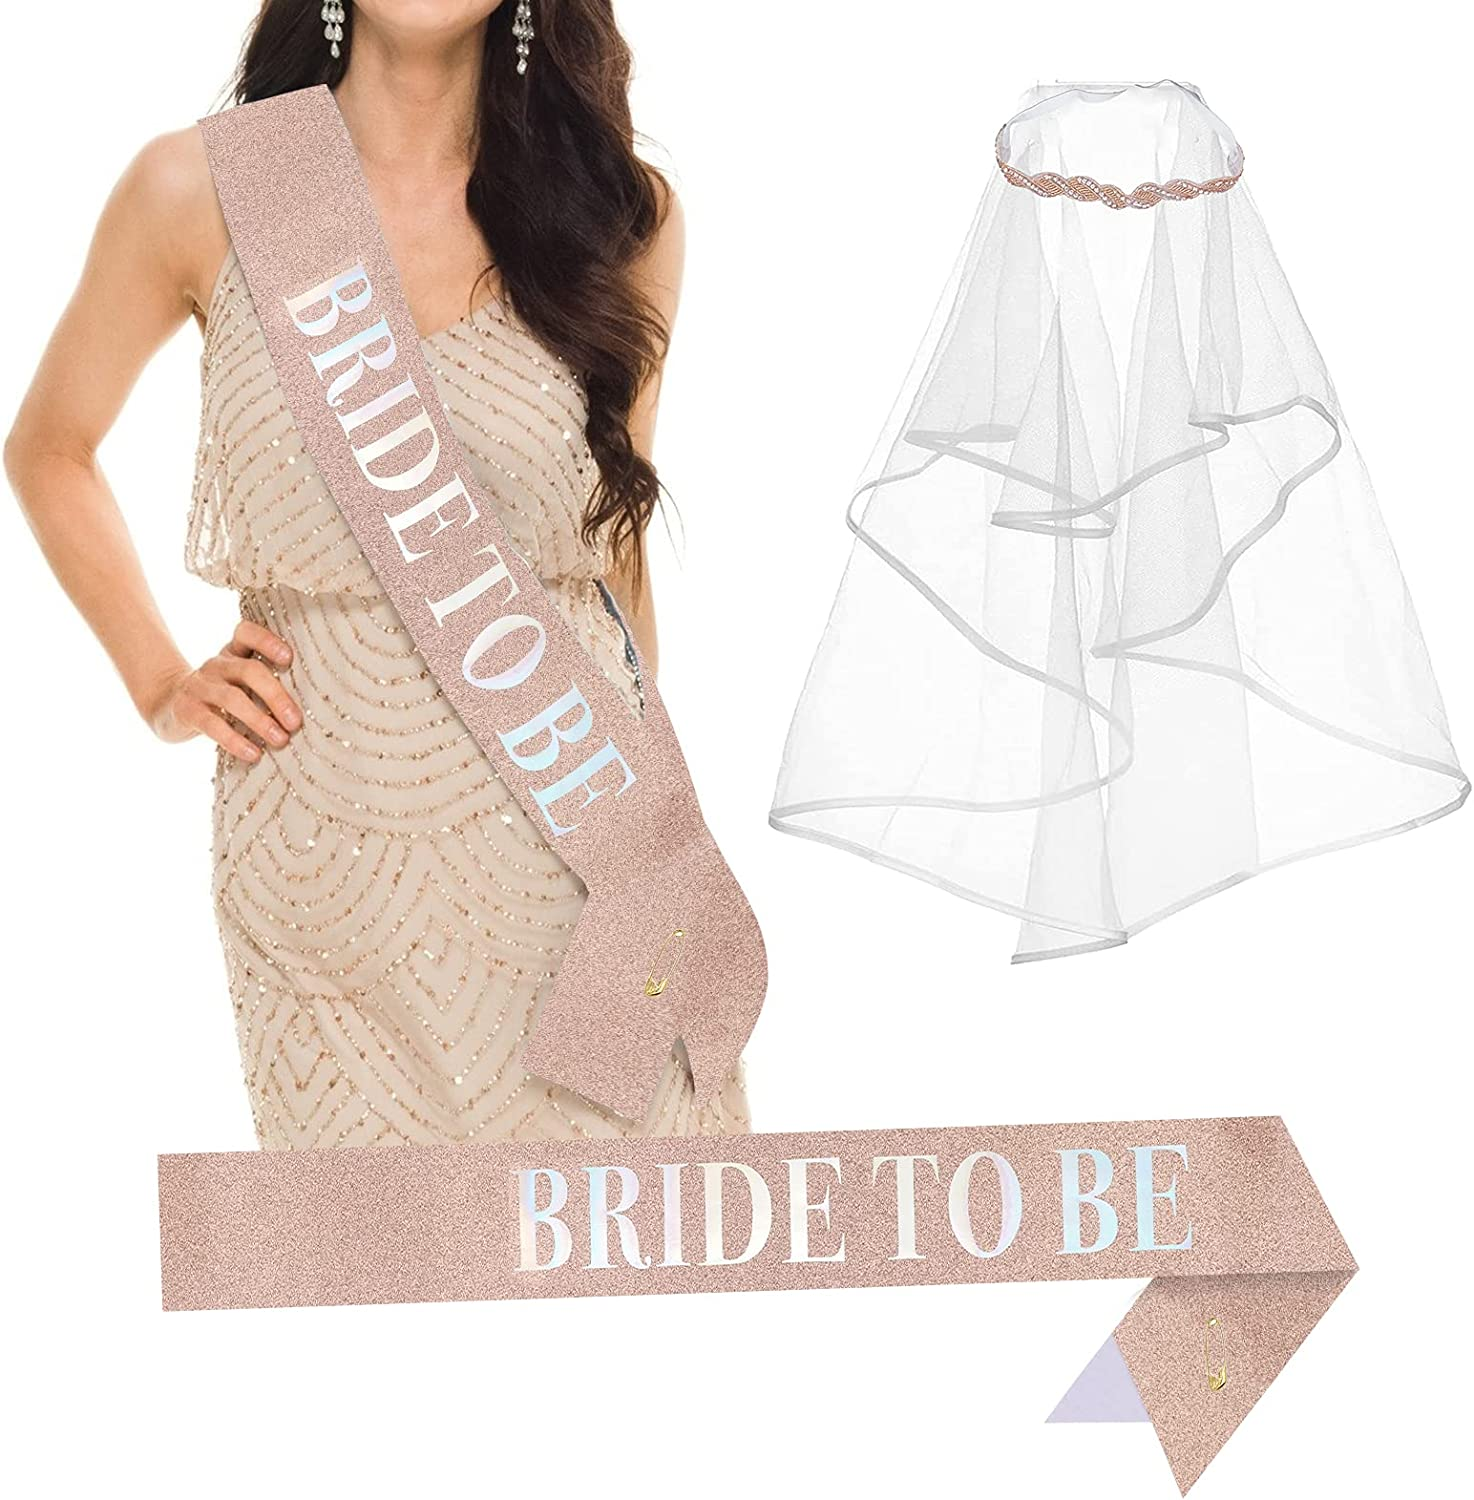 Bride to Be Sash and Long Bride Veil Bachelorette Party Decorations Headband for Bridal Shower Party Rose Gold Sash and White Words Engagement Decoration